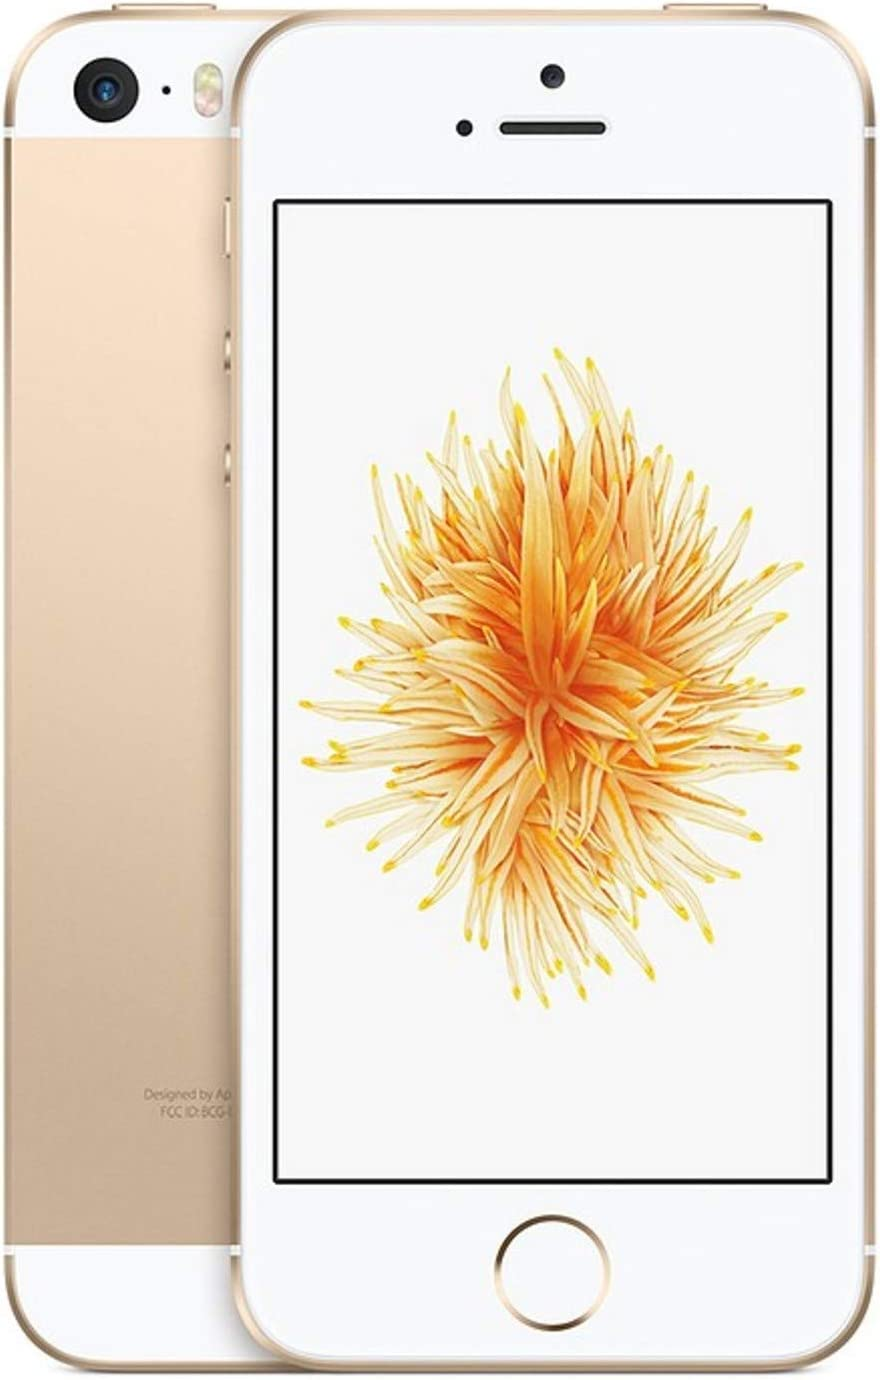 Apple iPhone SE, 32GB, Gold, For AT&T / T-Mobile (Renewed)